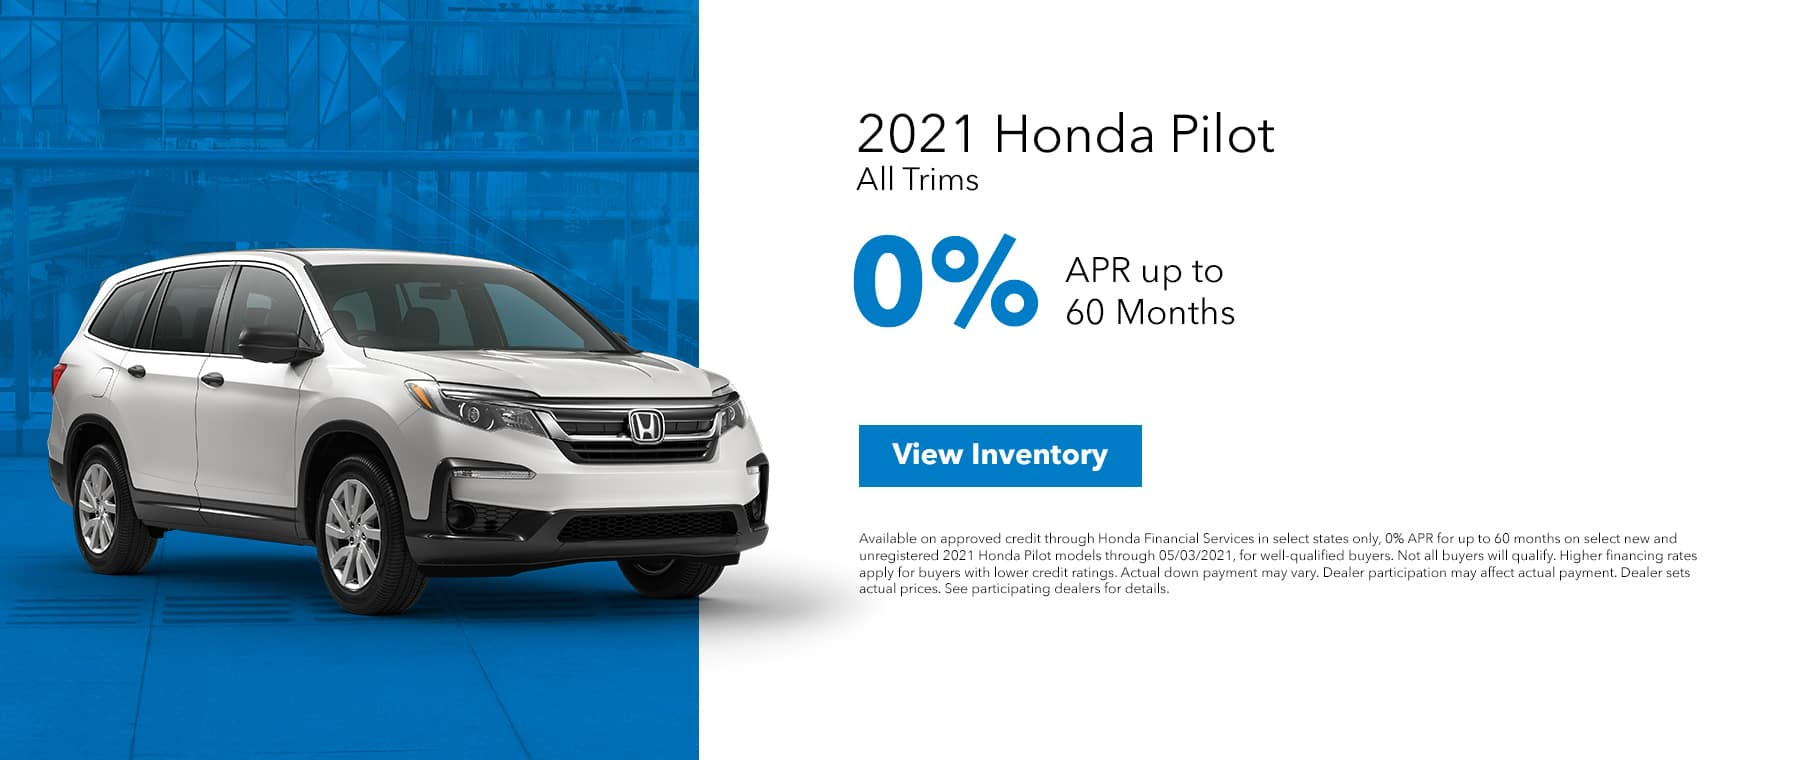 New 2021 Honda Pilot, 0% APR up to 60 Months